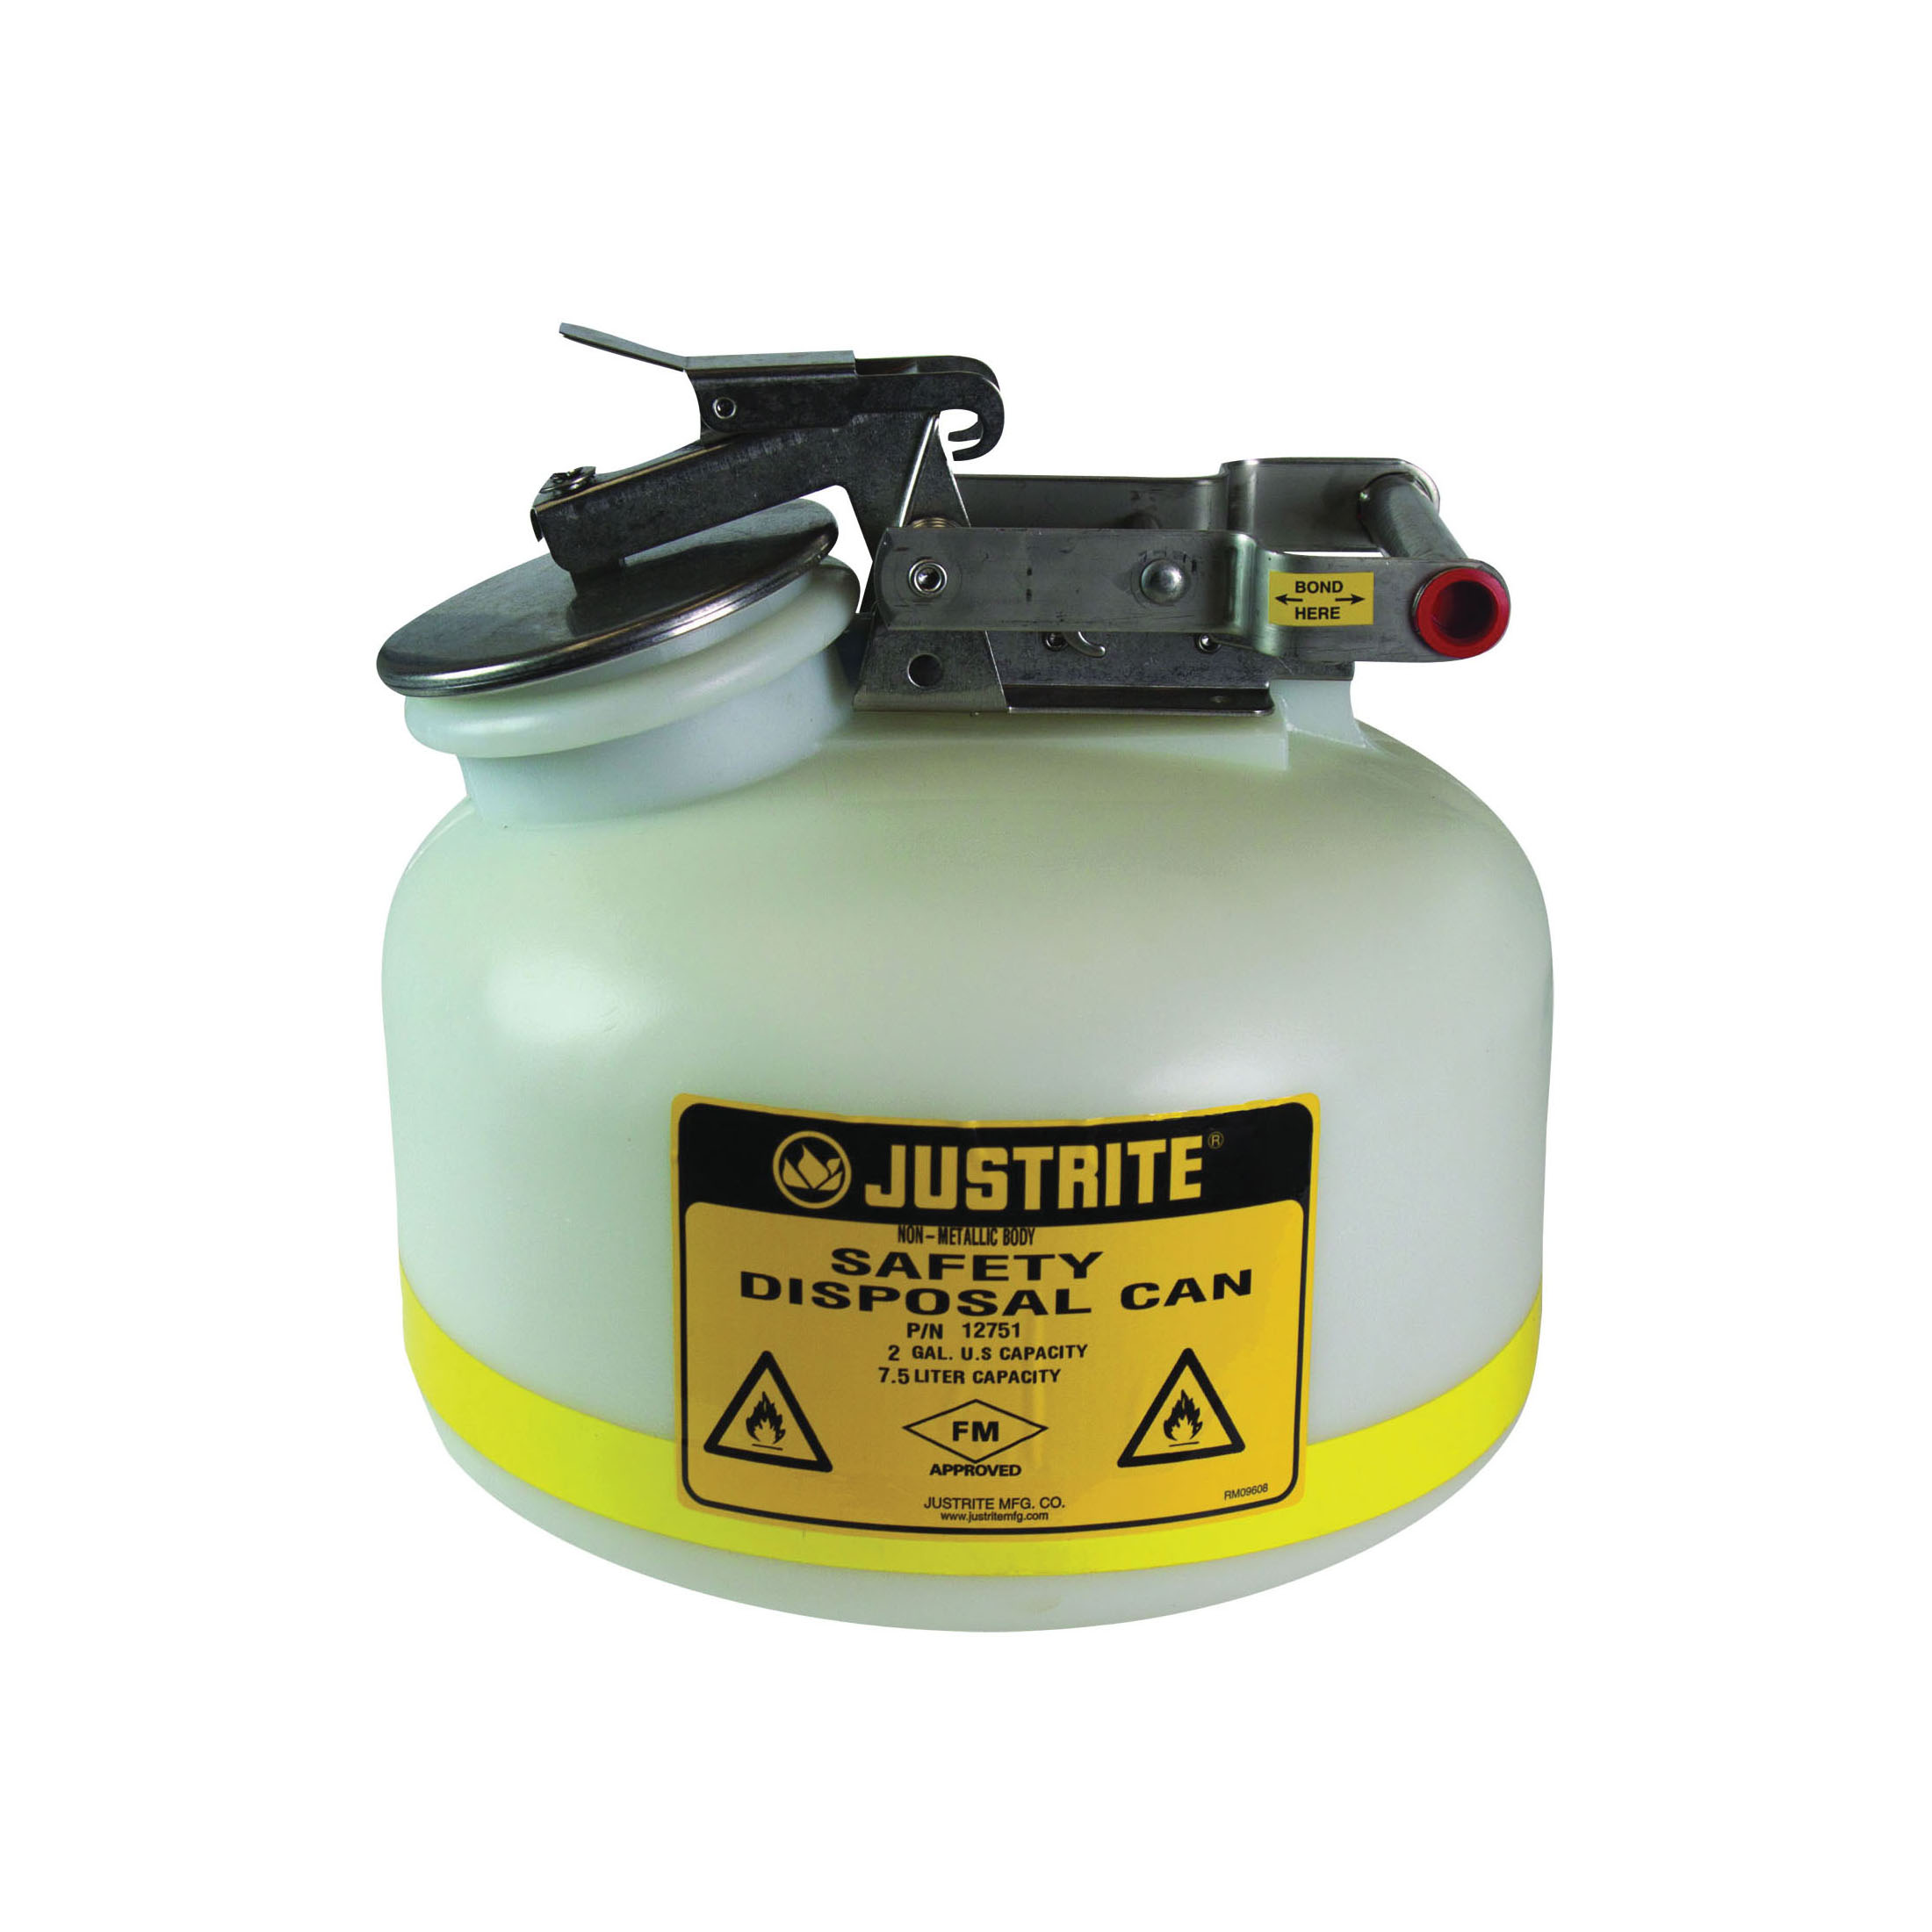 Justrite® 12751 Liquid Disposal Safety Can With Stainless Steel Hardware, 2 gal Capacity, 12 in Dia, 14-3/4 in H, Polyethylene, White, FM Approved, OSHA Approved, NFPA 30